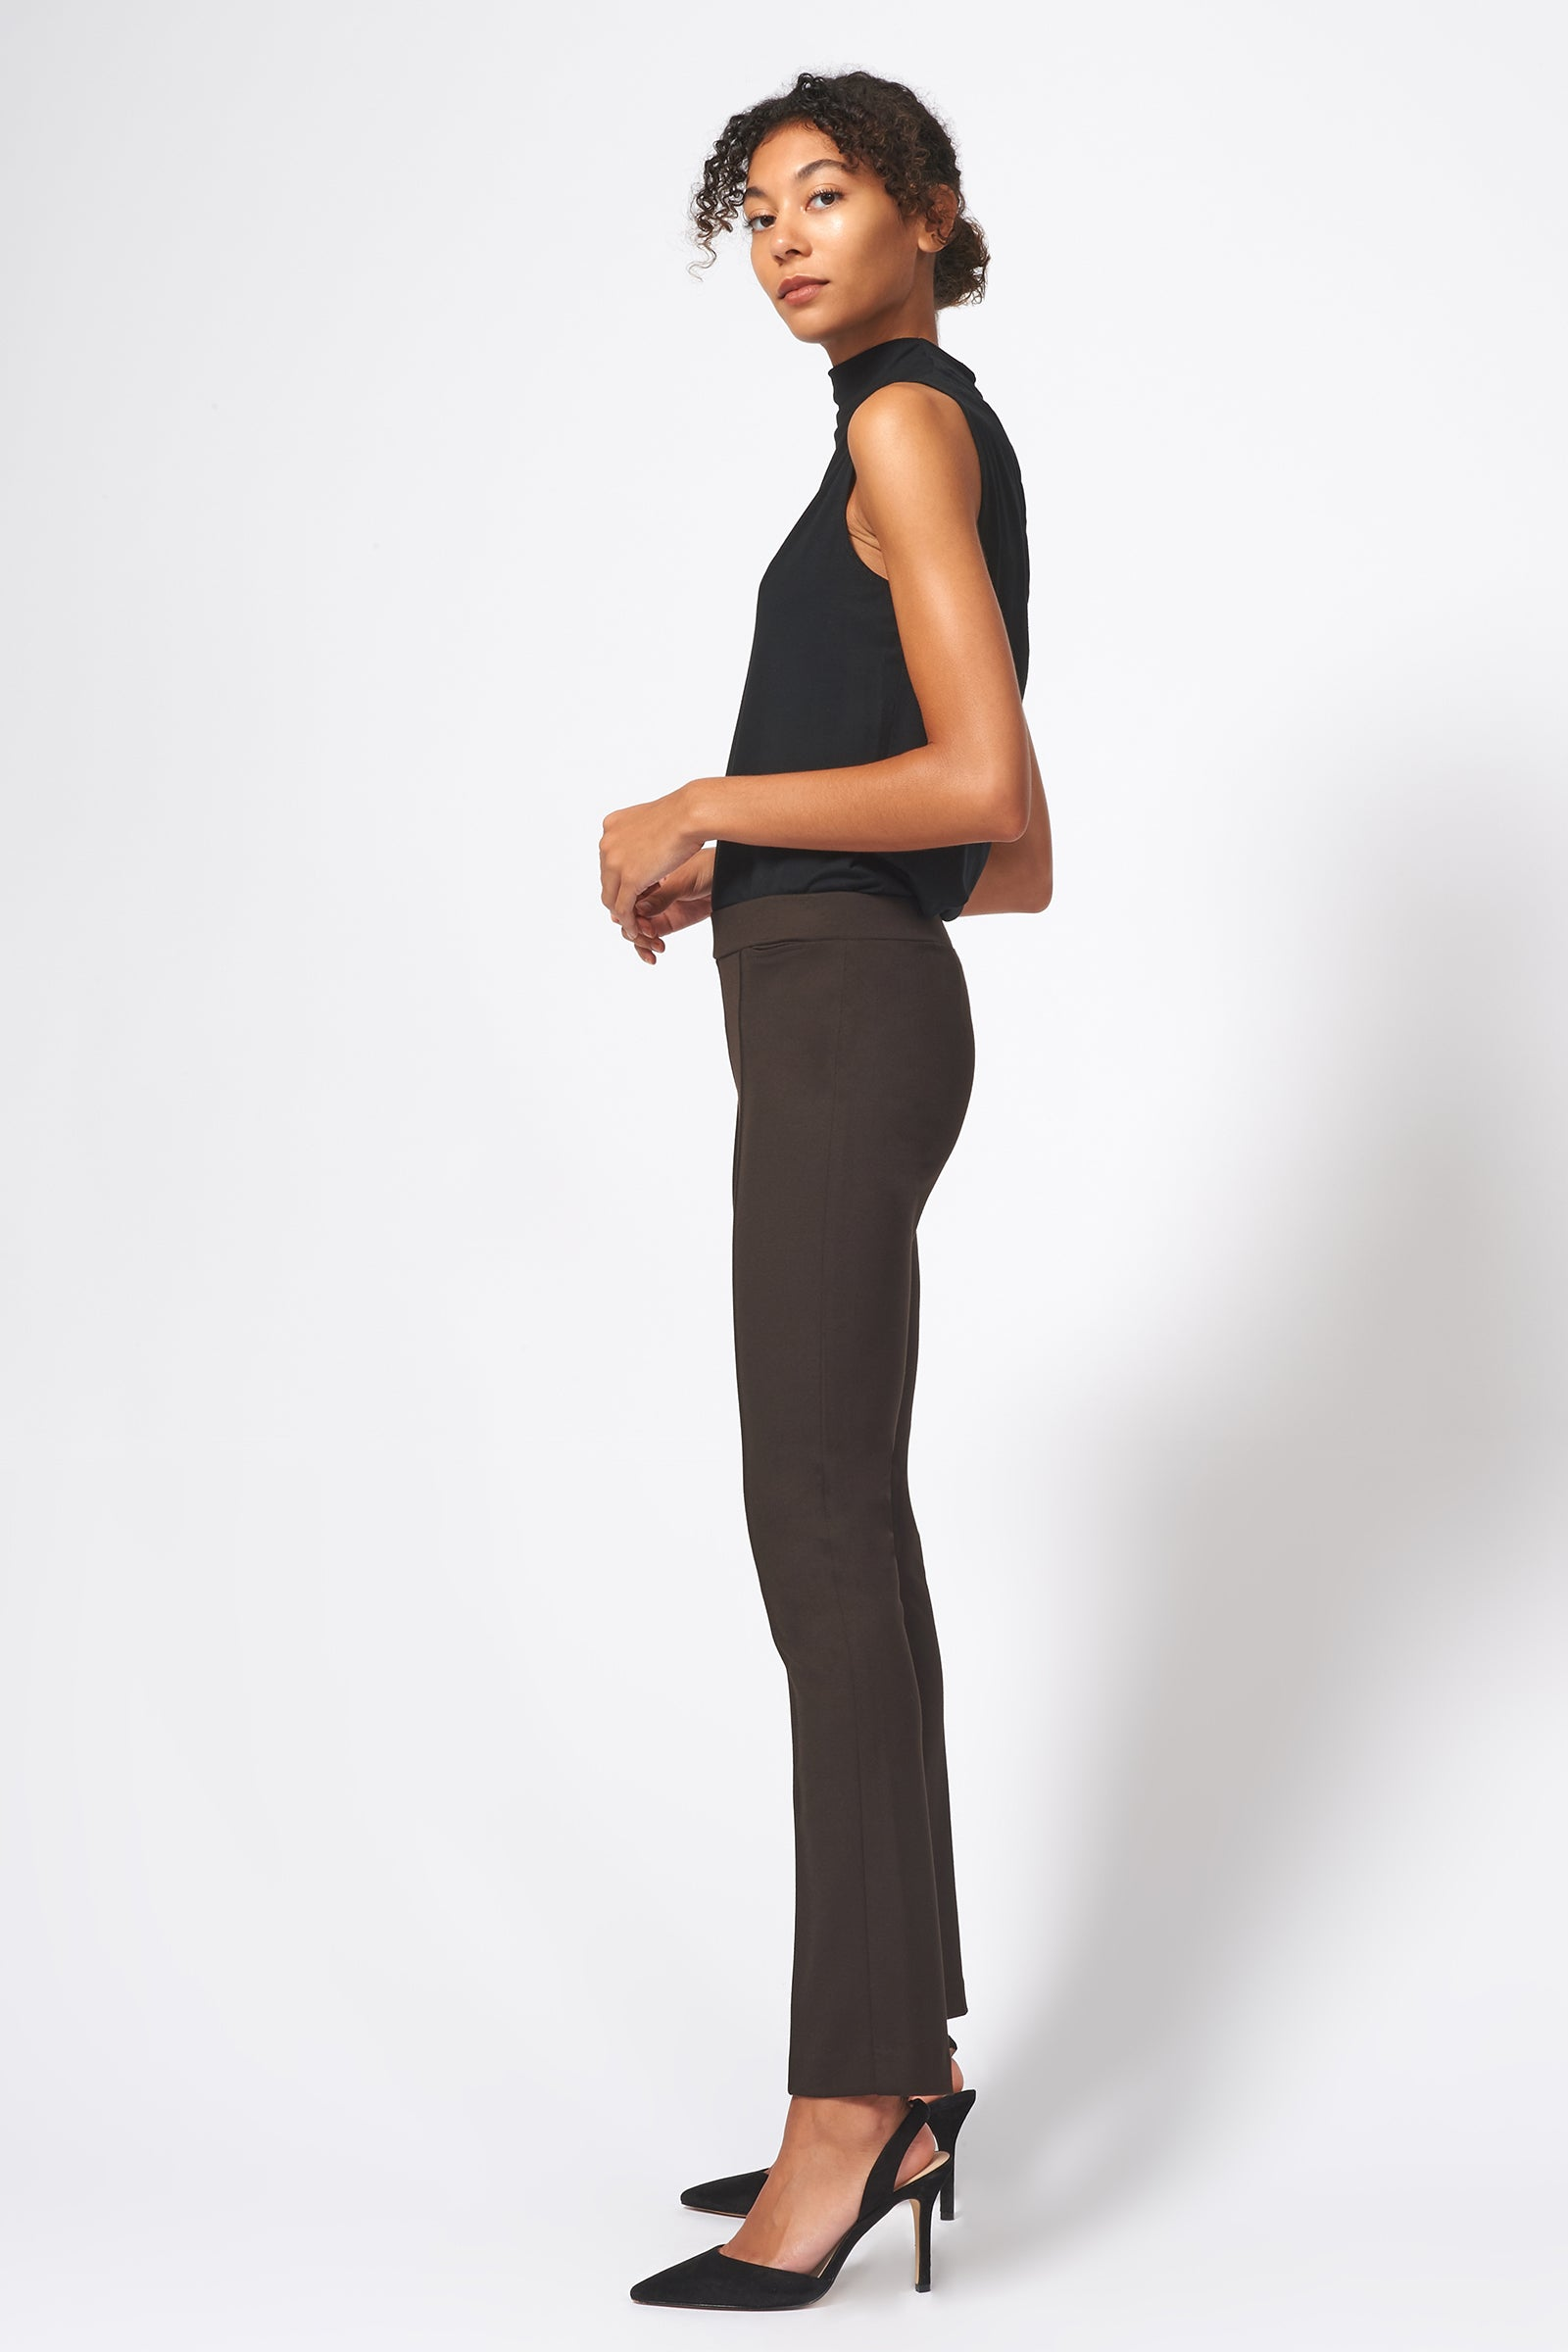 Kal Rieman Pintuck Ponte Straight Leg Pant in Espresso on Model Full Side View